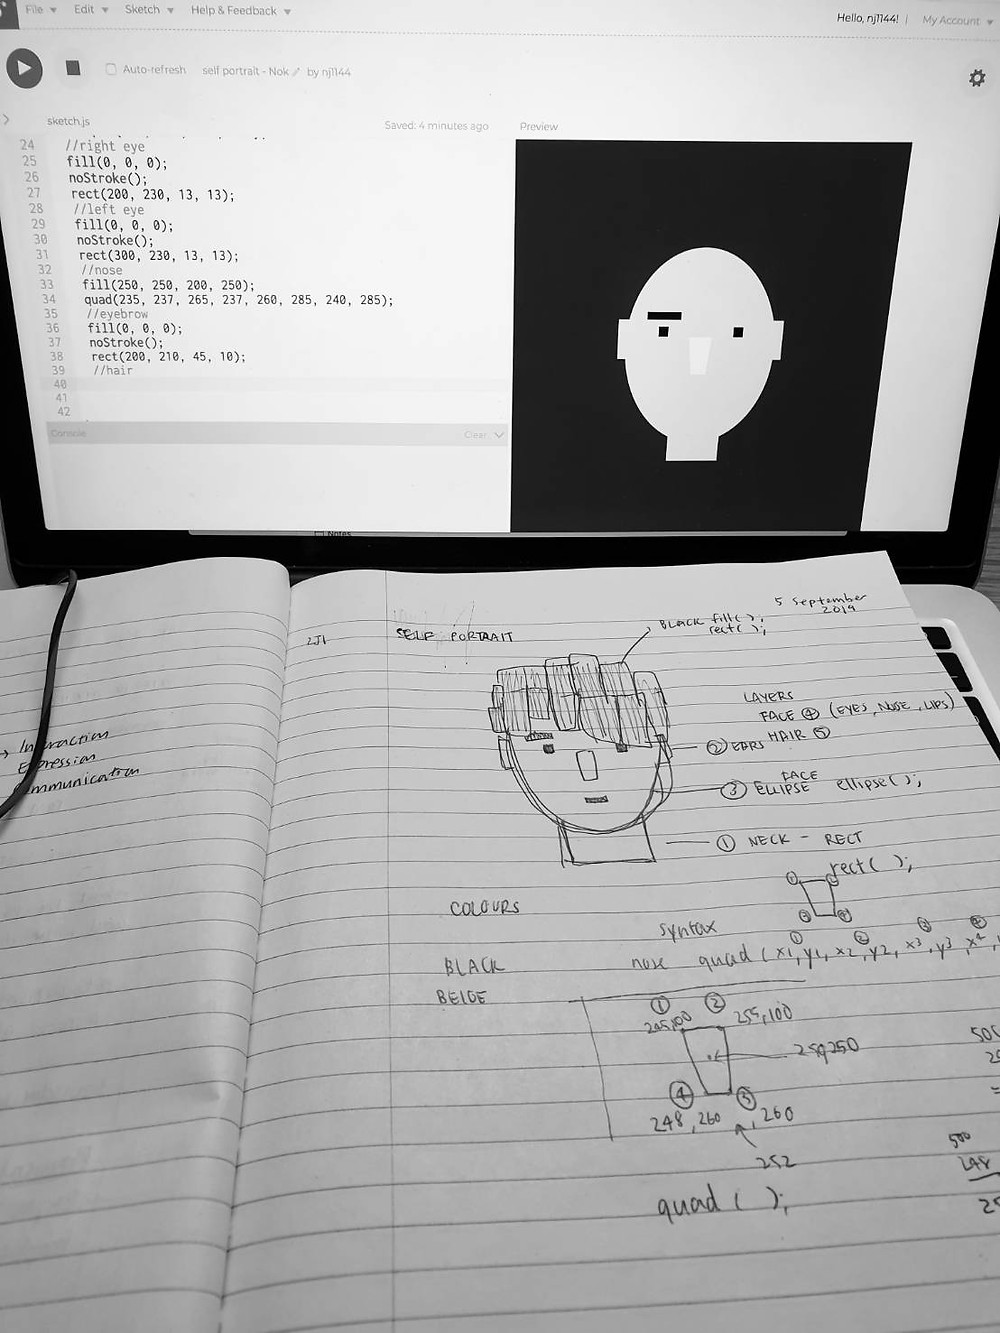 a photo of my self portrait sketch and some notes